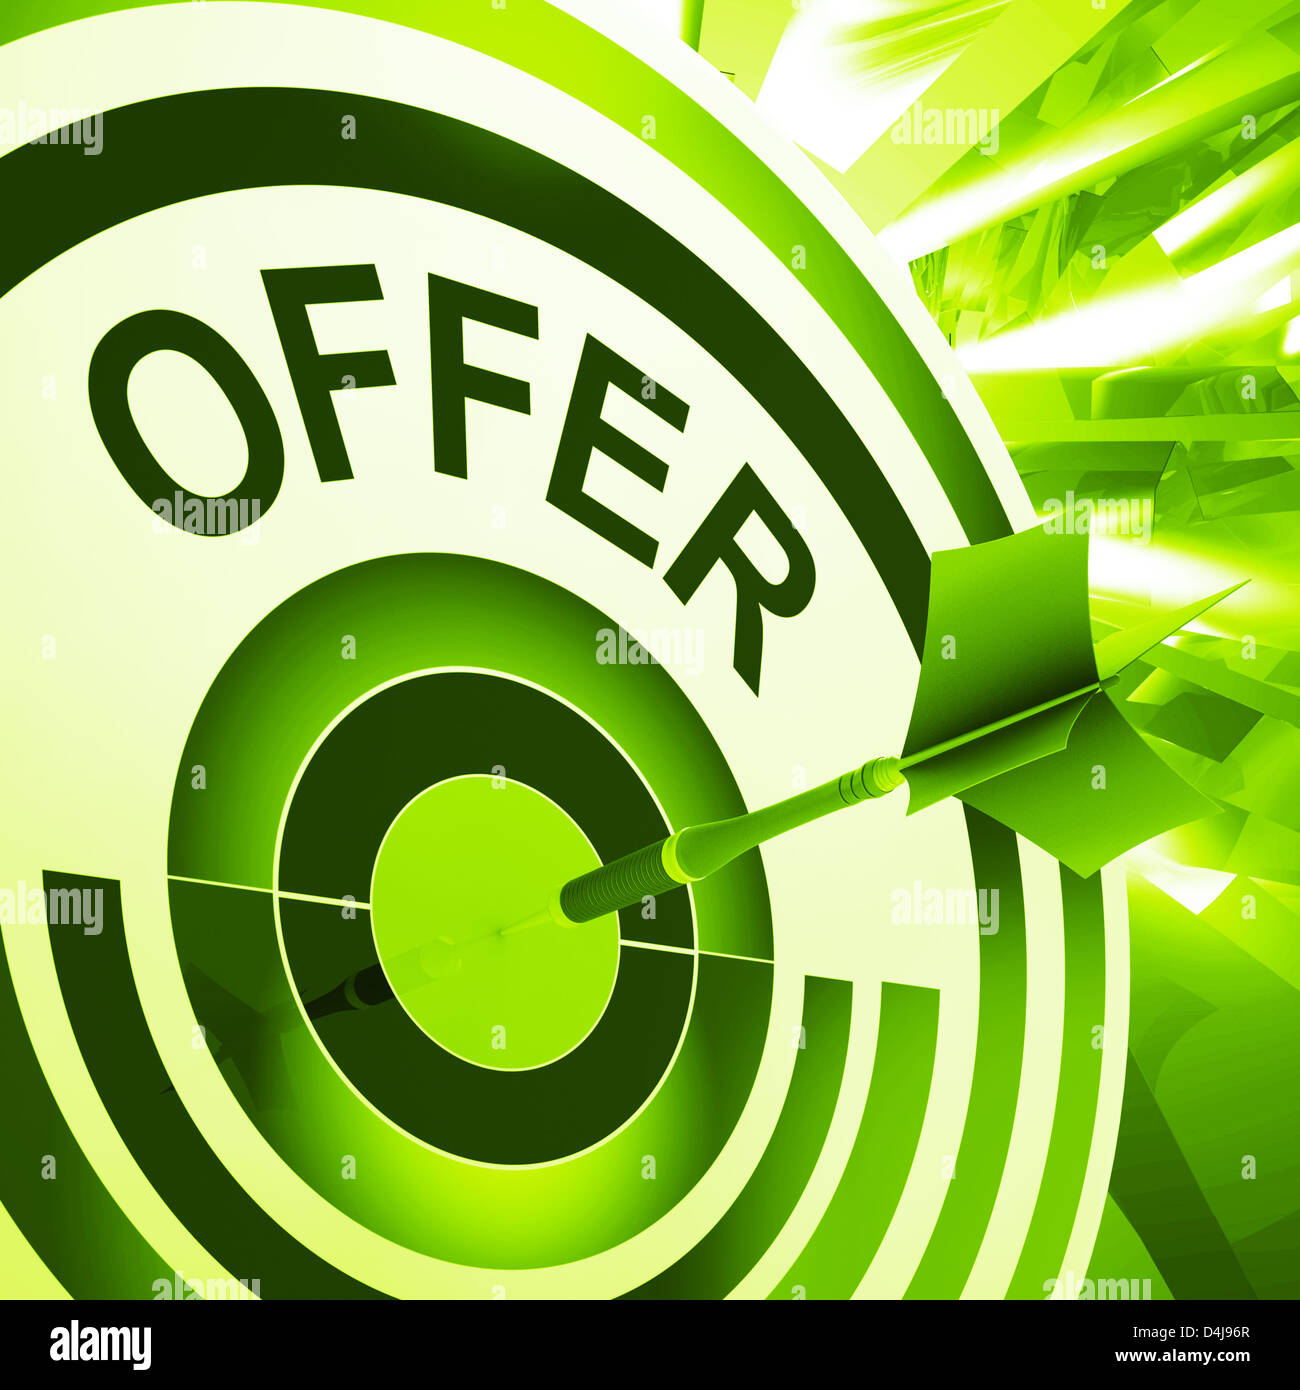 offer target meaning discounts reductions or sales stock photo